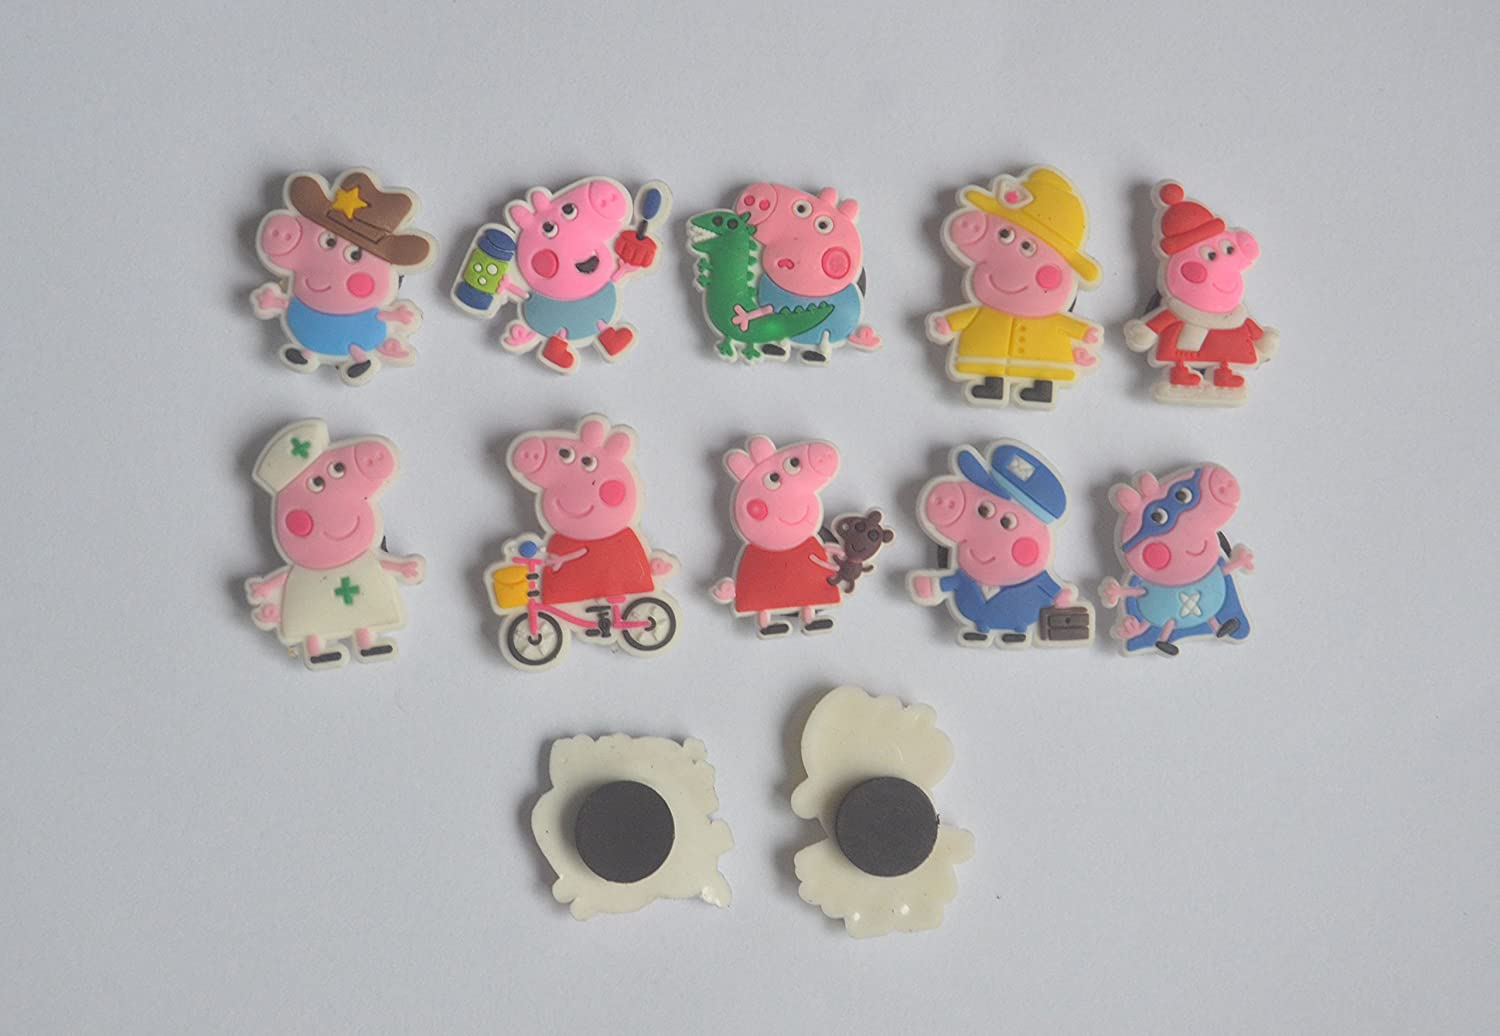 10PCS Peppa Pig Fridge stickers Refrigerator Magnet for Home & Room Decoration